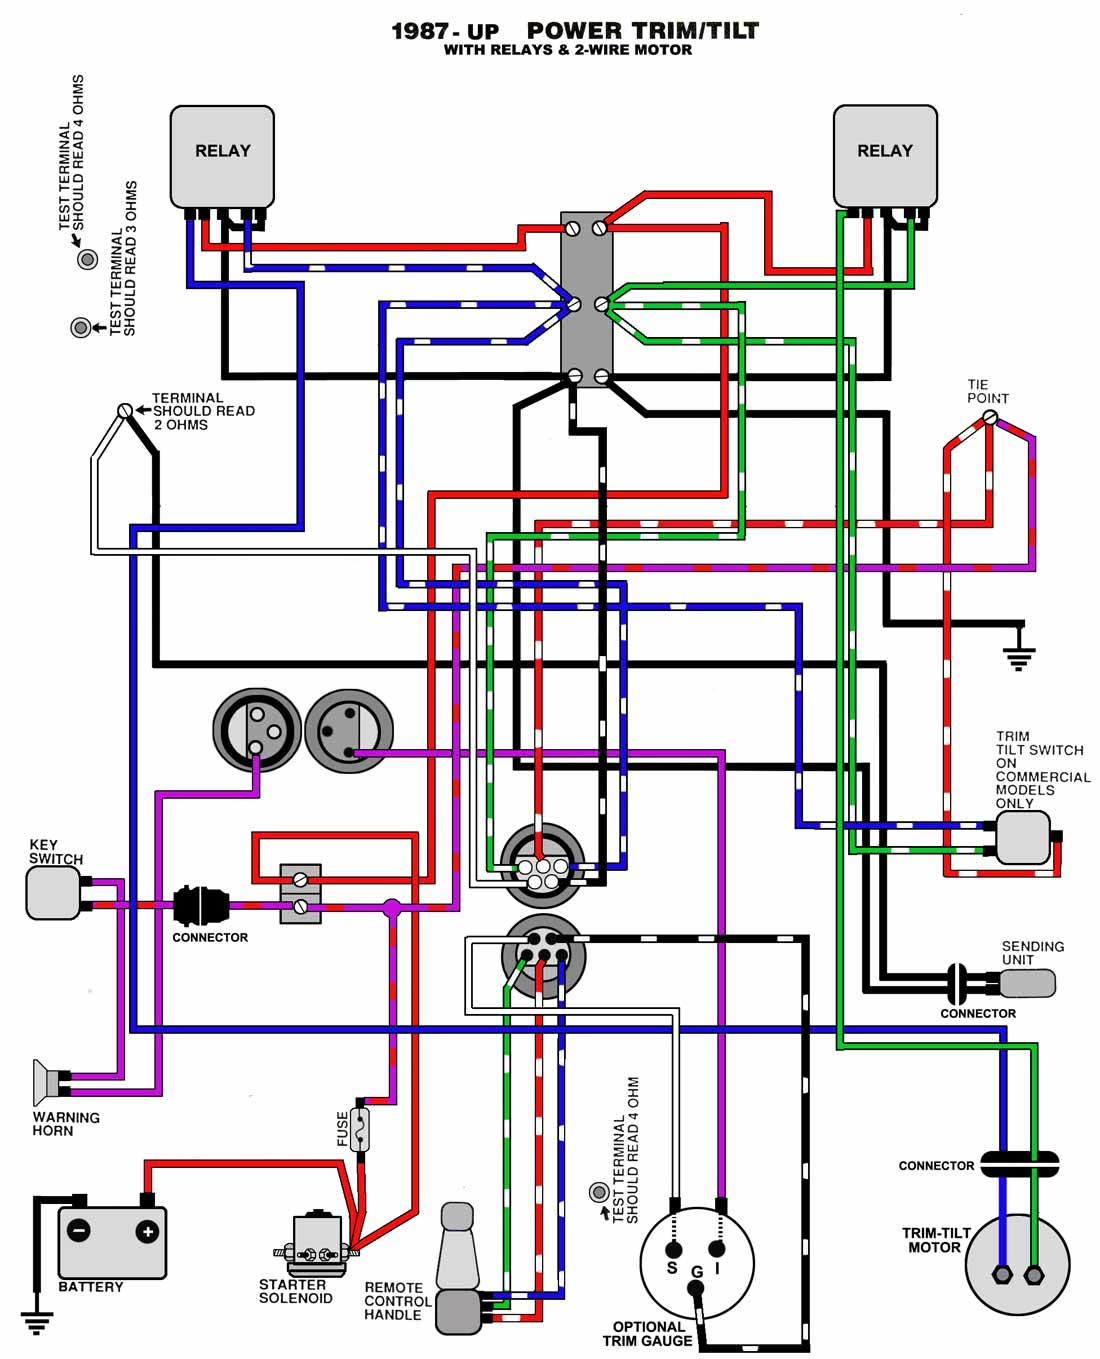 115 hp johnson outboard wiring diagram electrical wiring diagram rh universalservices co 40 HP Johnson Outboard Wiring Diagram 2003 Johnson 50 HP Wiring Diagram